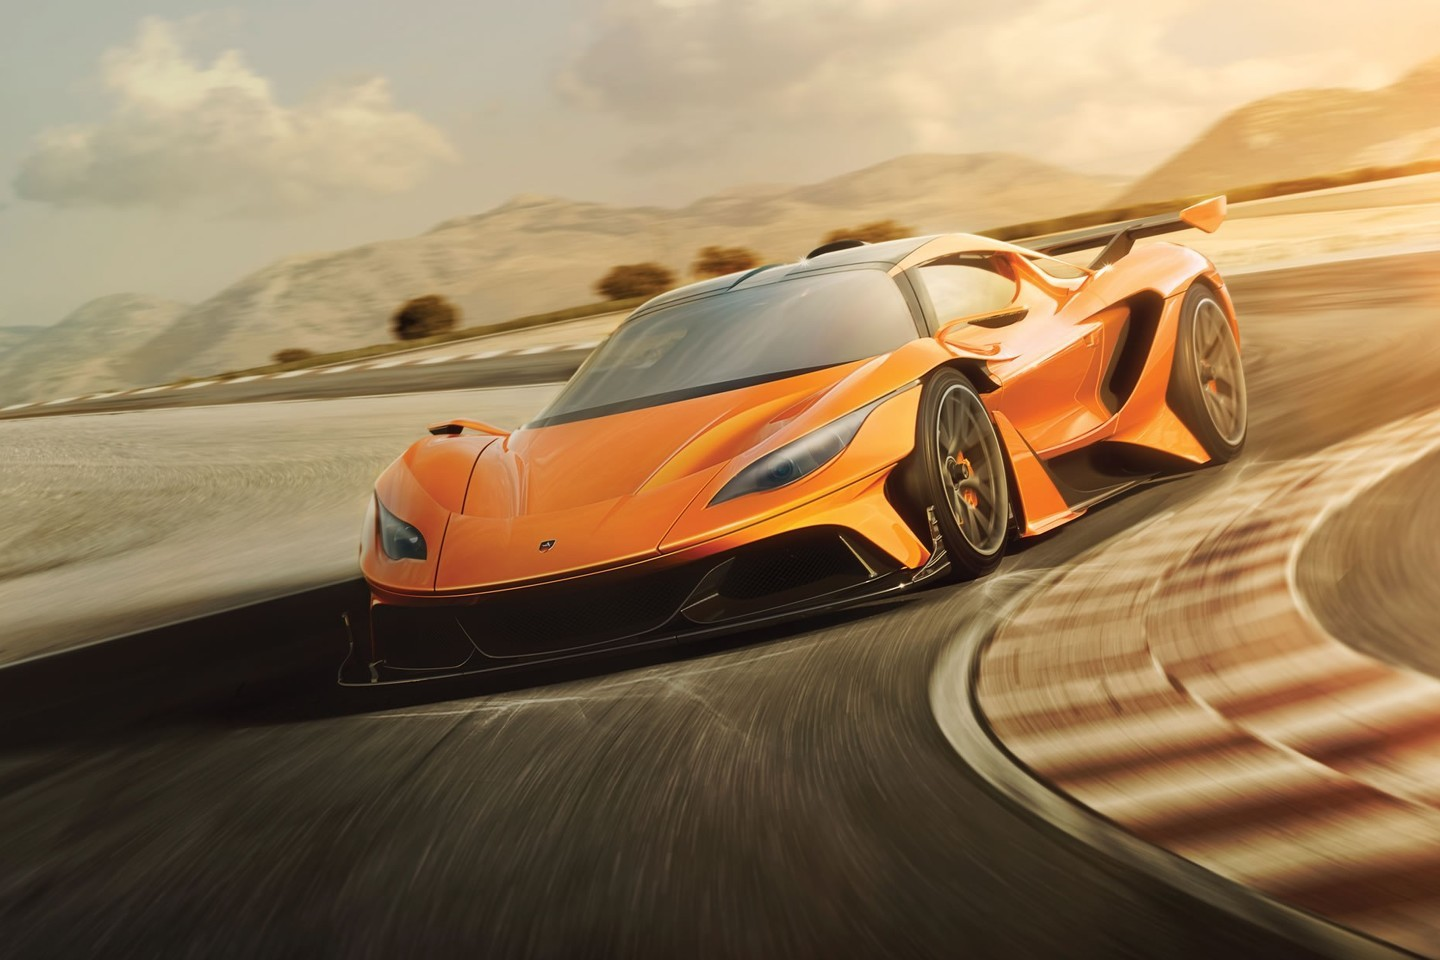 Apollo Arrow Wallpapers Images Photos Pictures Backgrounds